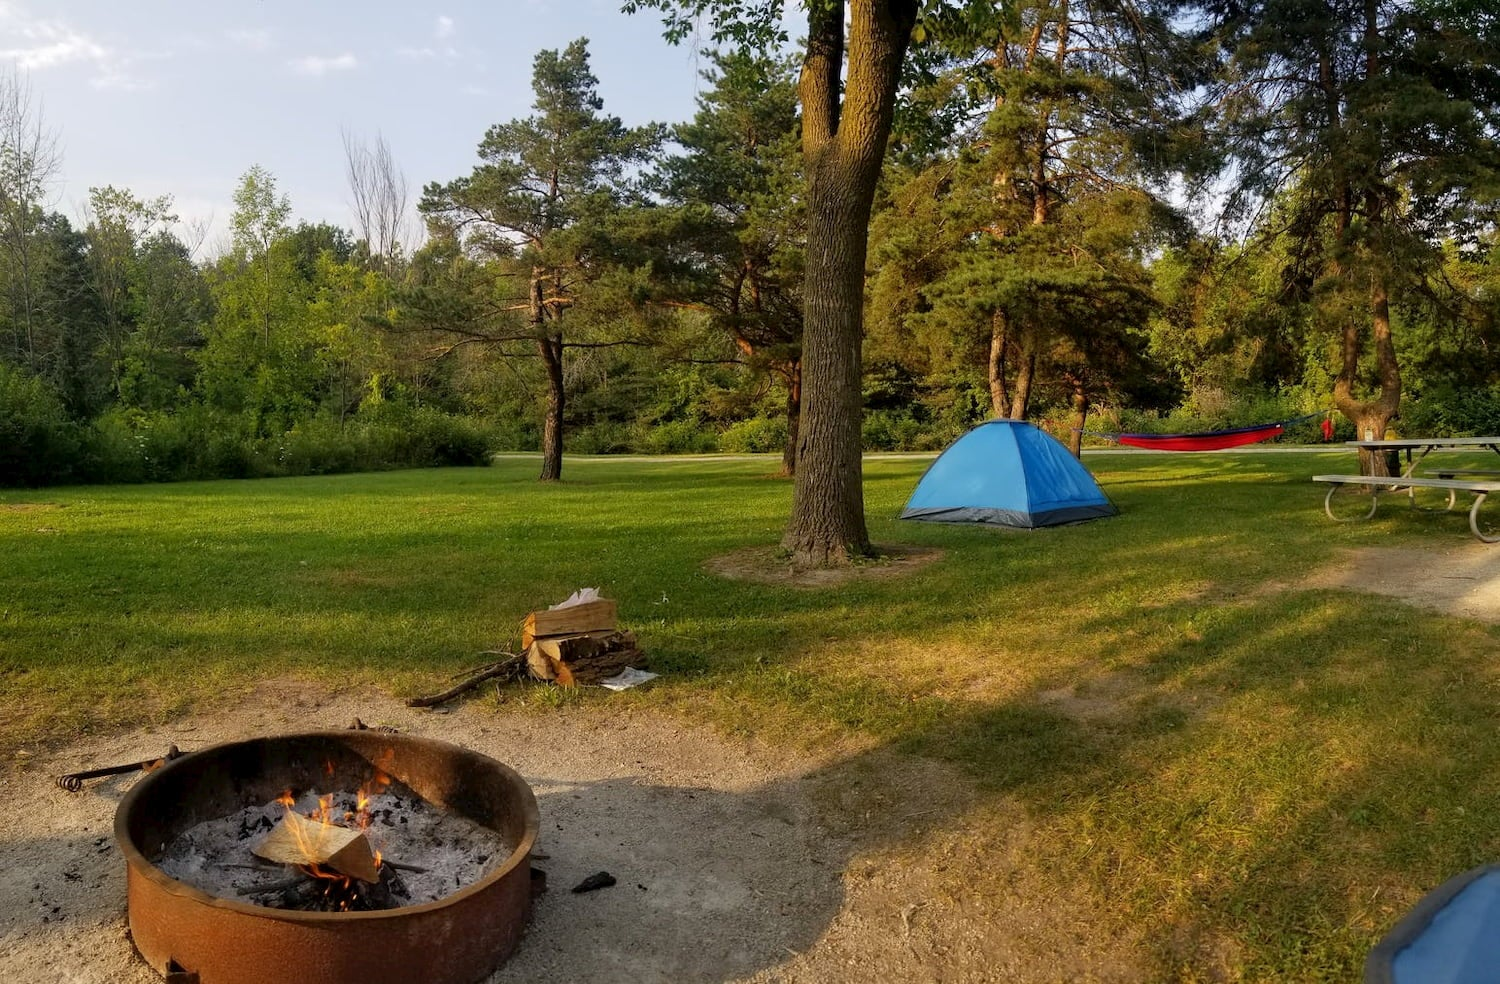 firepit, tent, and hammock set up in large park